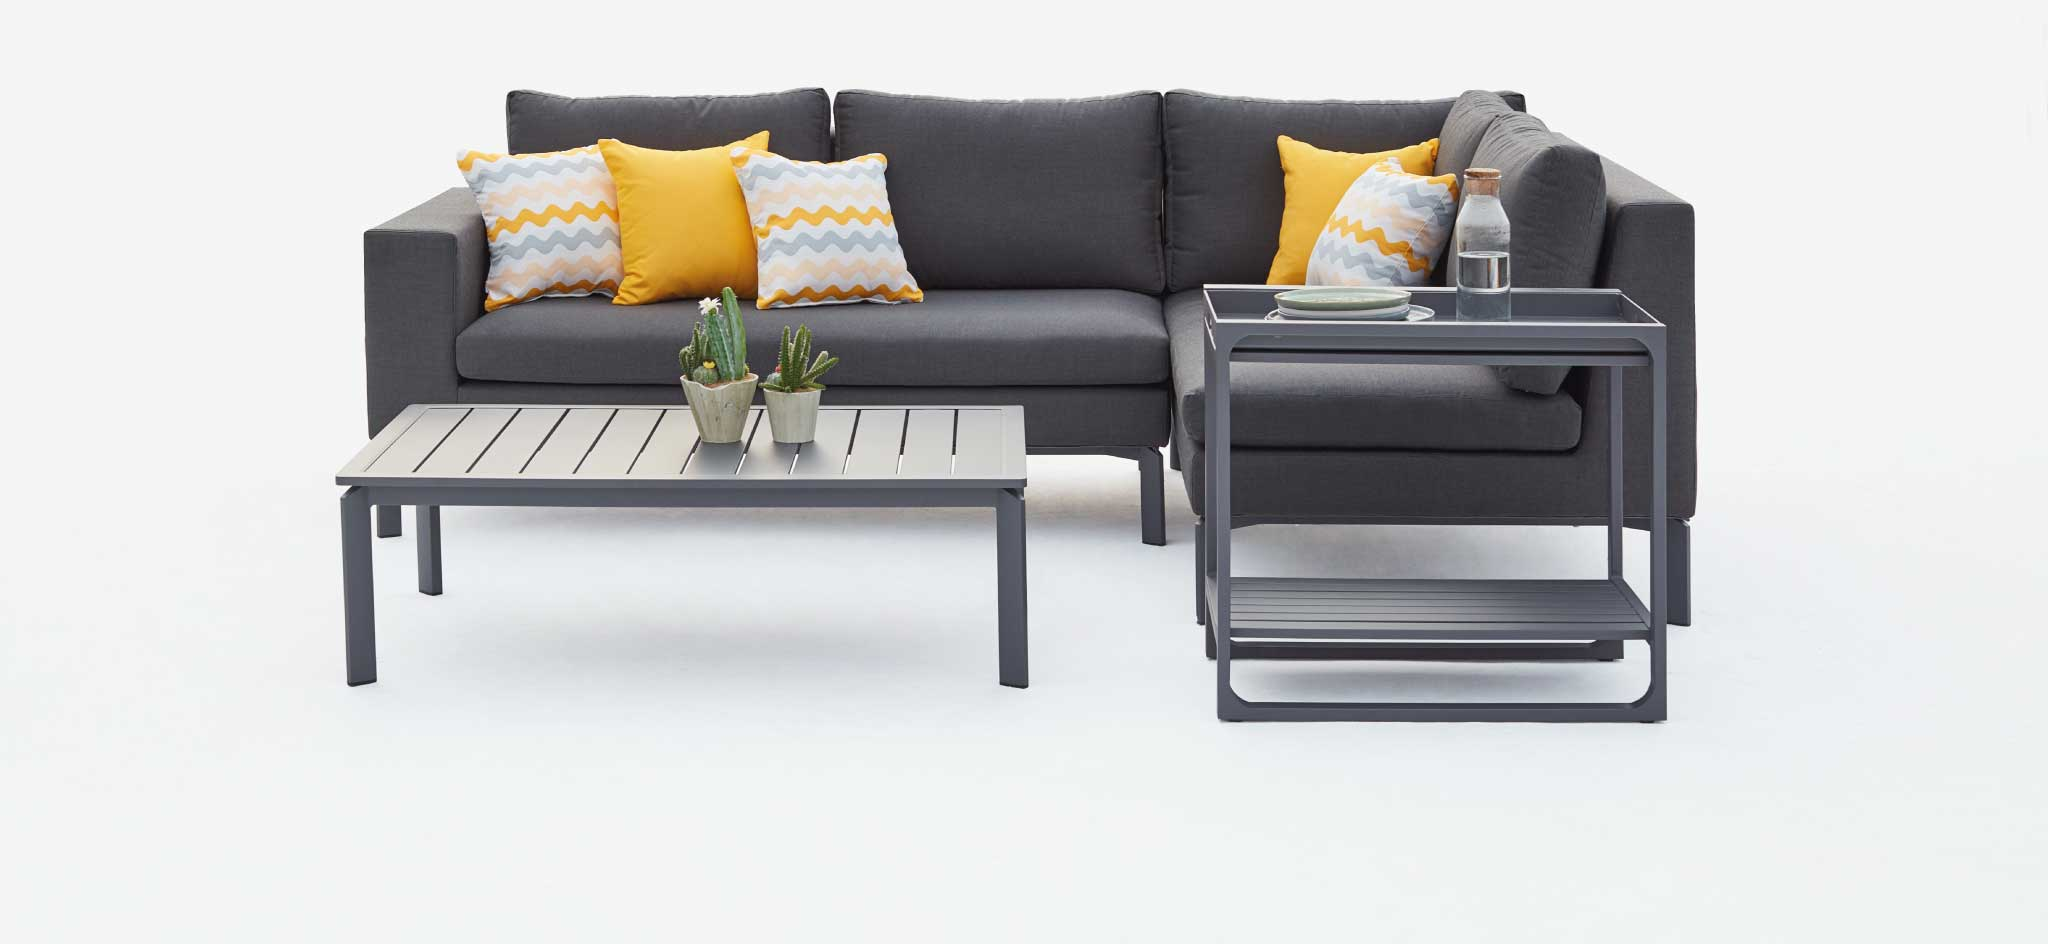 Zambezi Outdoor Lounge Furniture-2